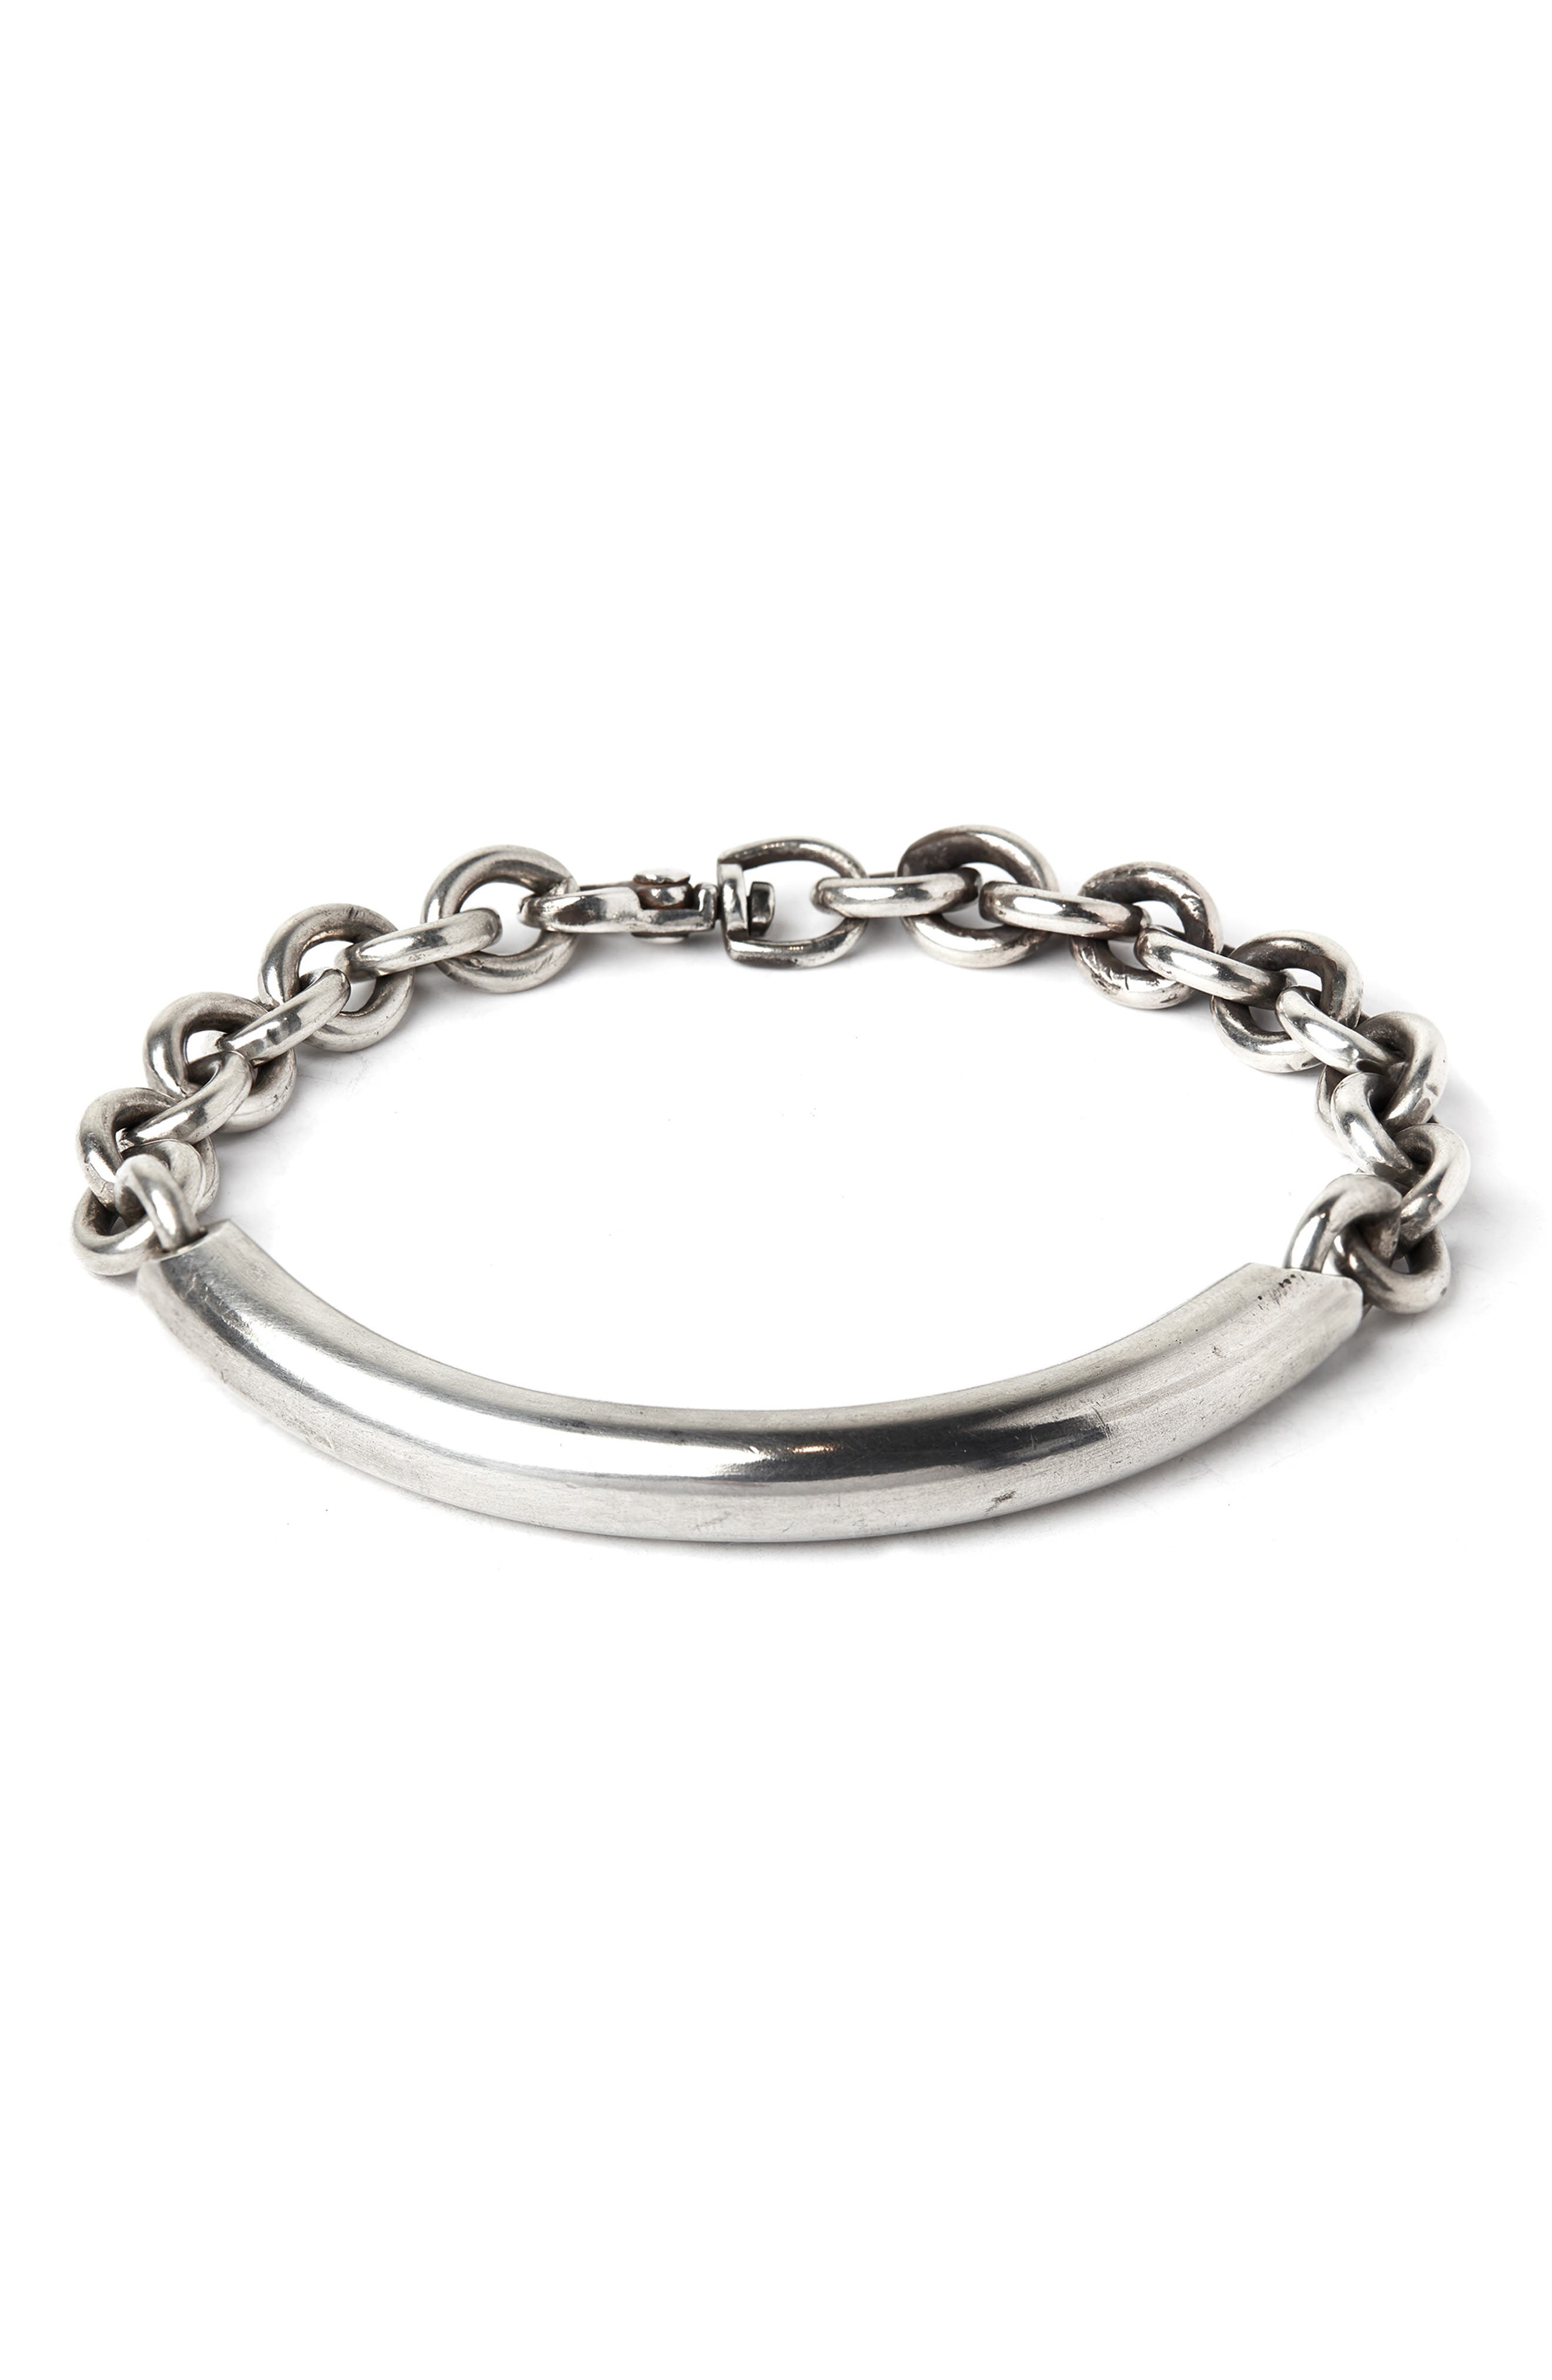 TITLE OF WORK Round Cable Bracelet in Silver